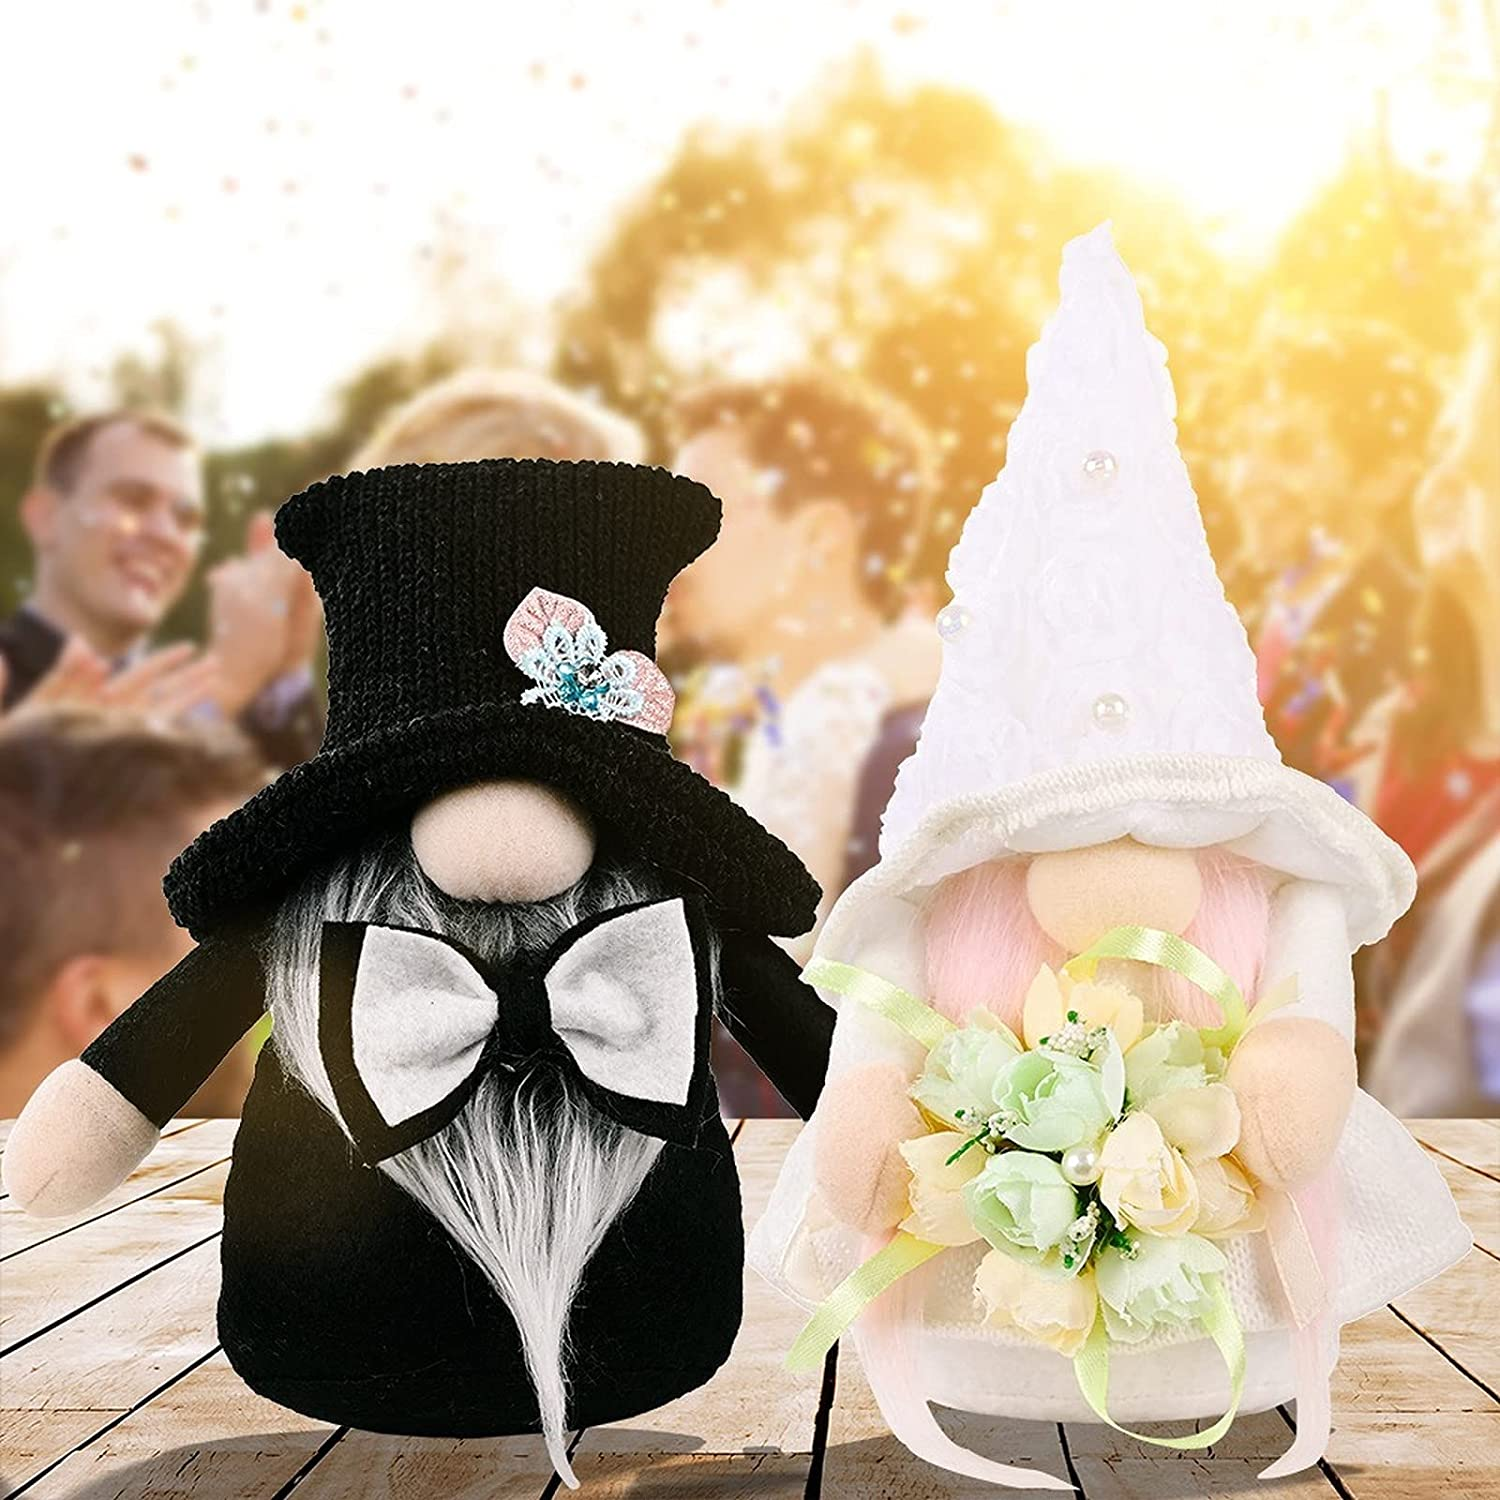 KEAIDO 2pcs Wedding Gnome Bride Dress Groom Suits Bridal Bouquet Wedding Gift Decoration Plush Faceless Collectible Doll Figurine Engagement Valentine's Day Home Party Kitchen Elf Tomte Swedish Dwarf